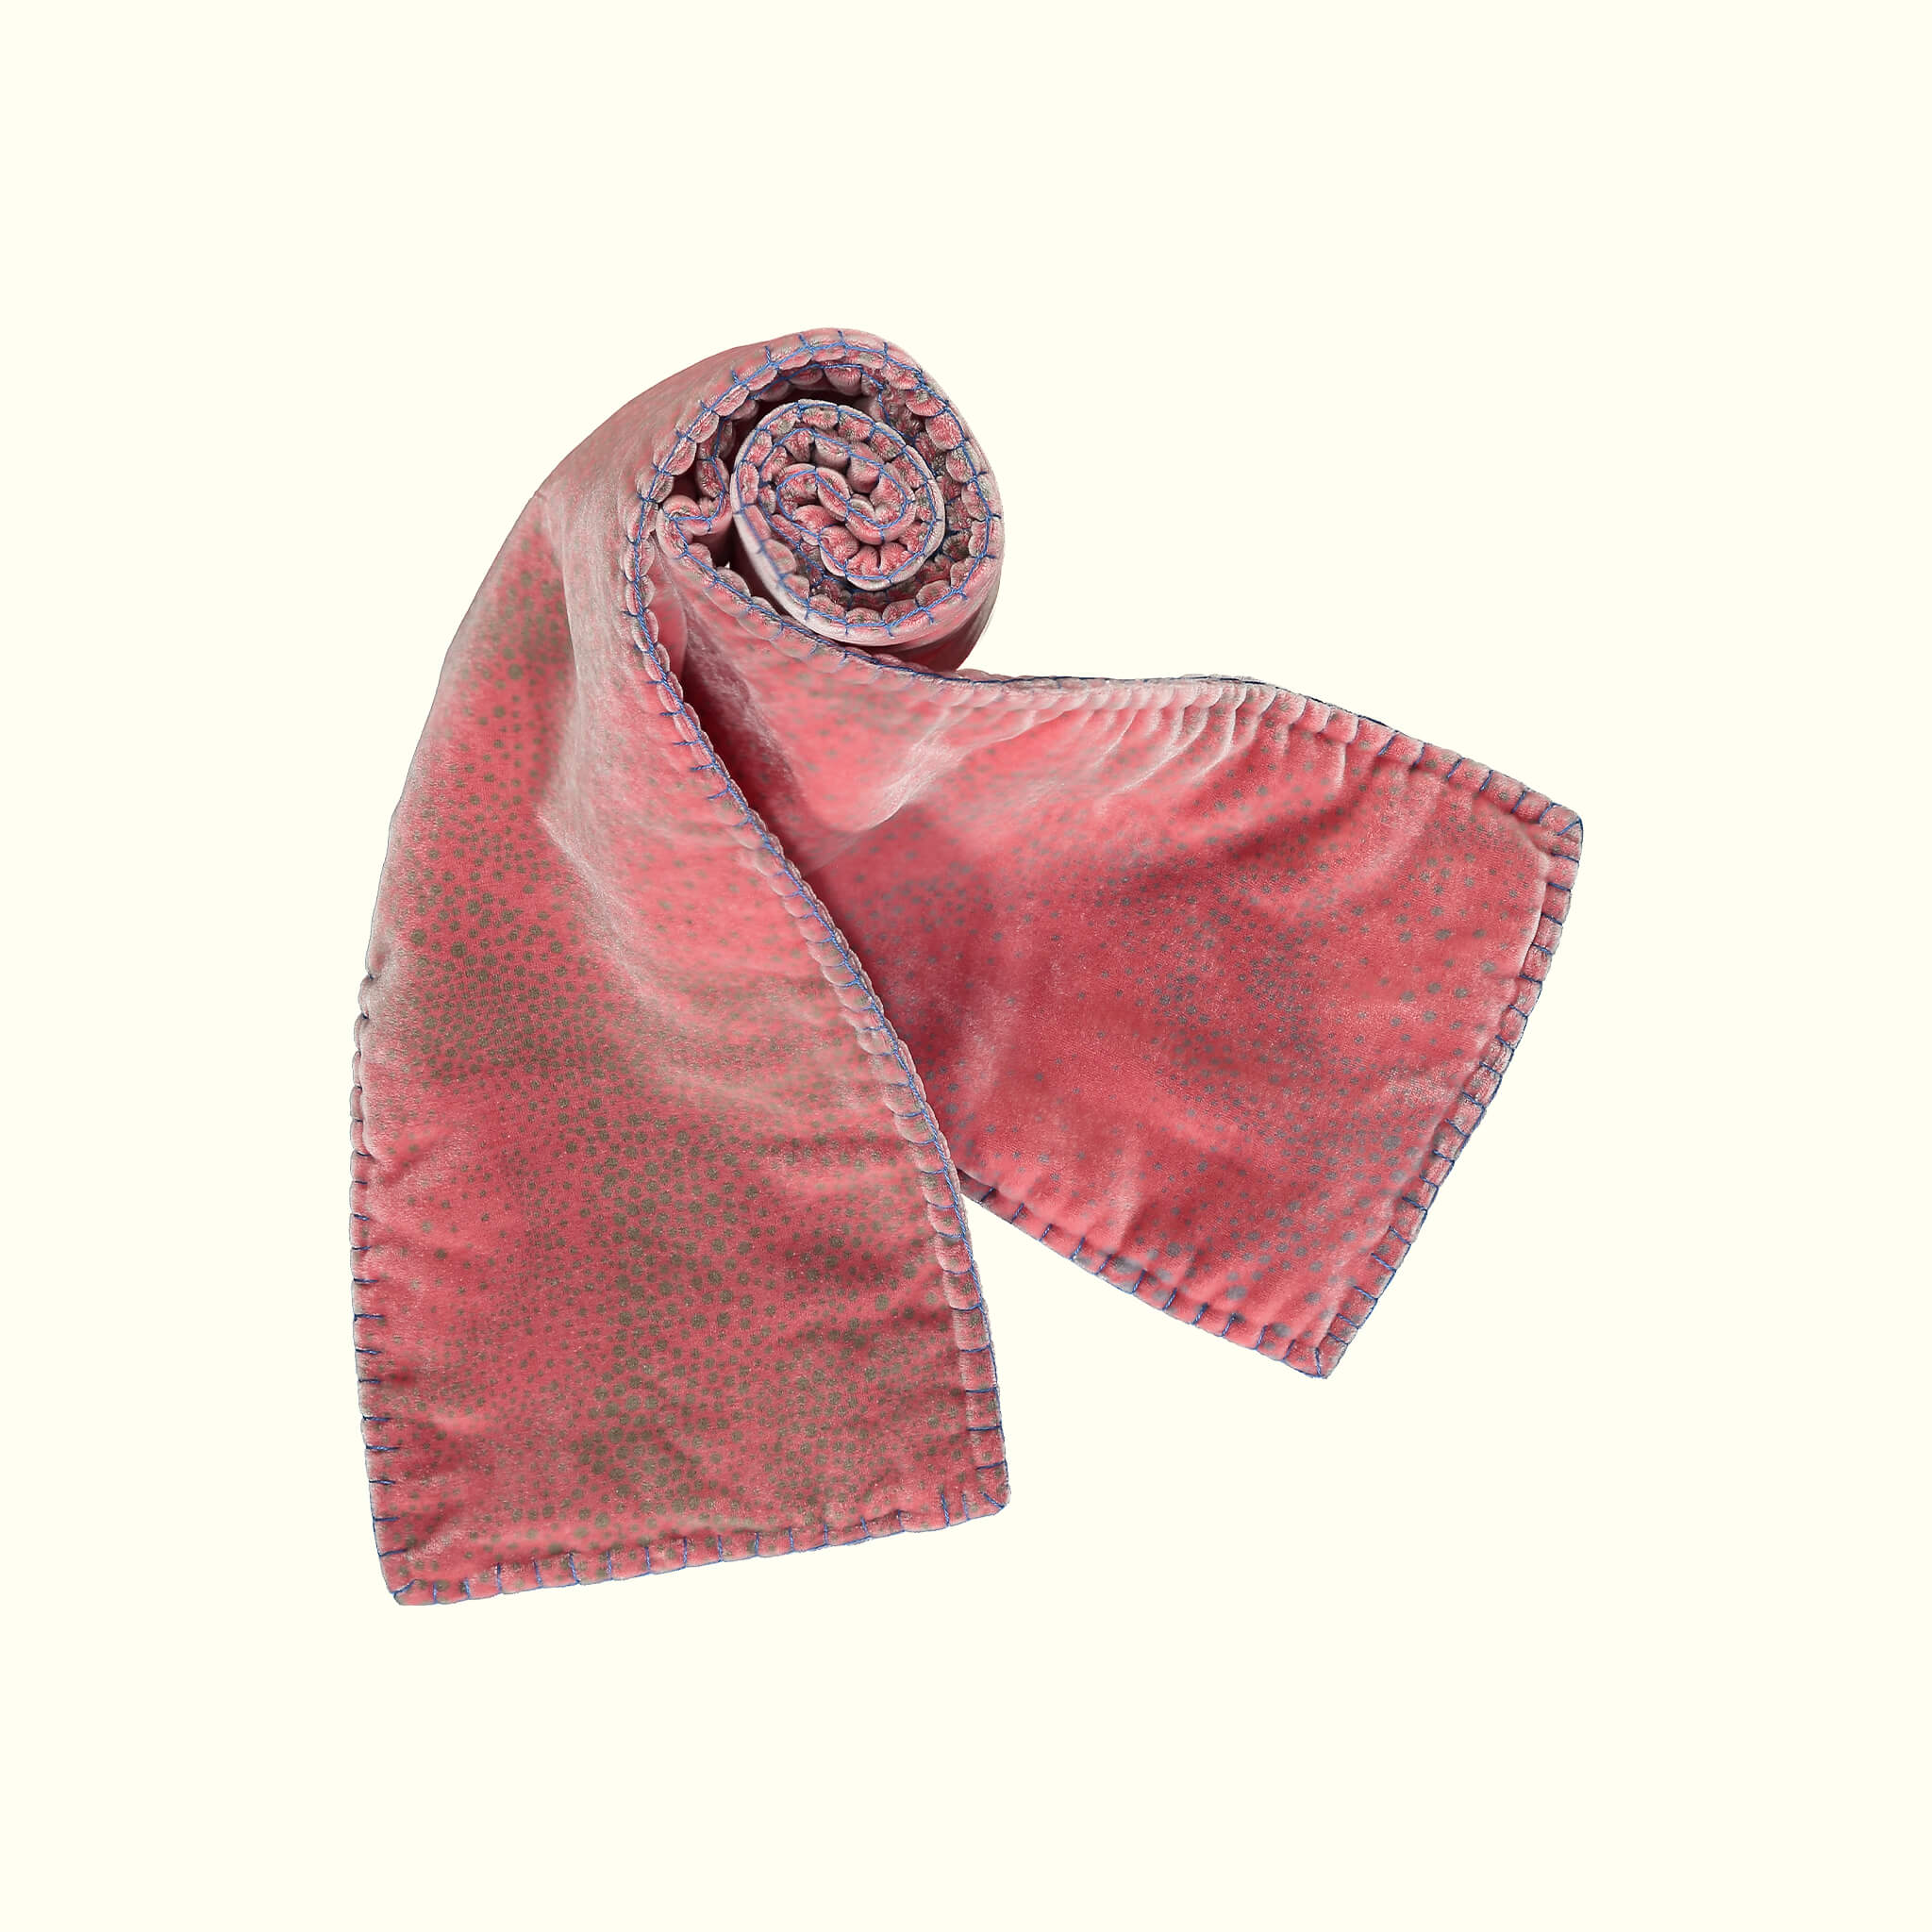 A luxury British silk velvet scarf by GVE in scarlet Aurora print design.